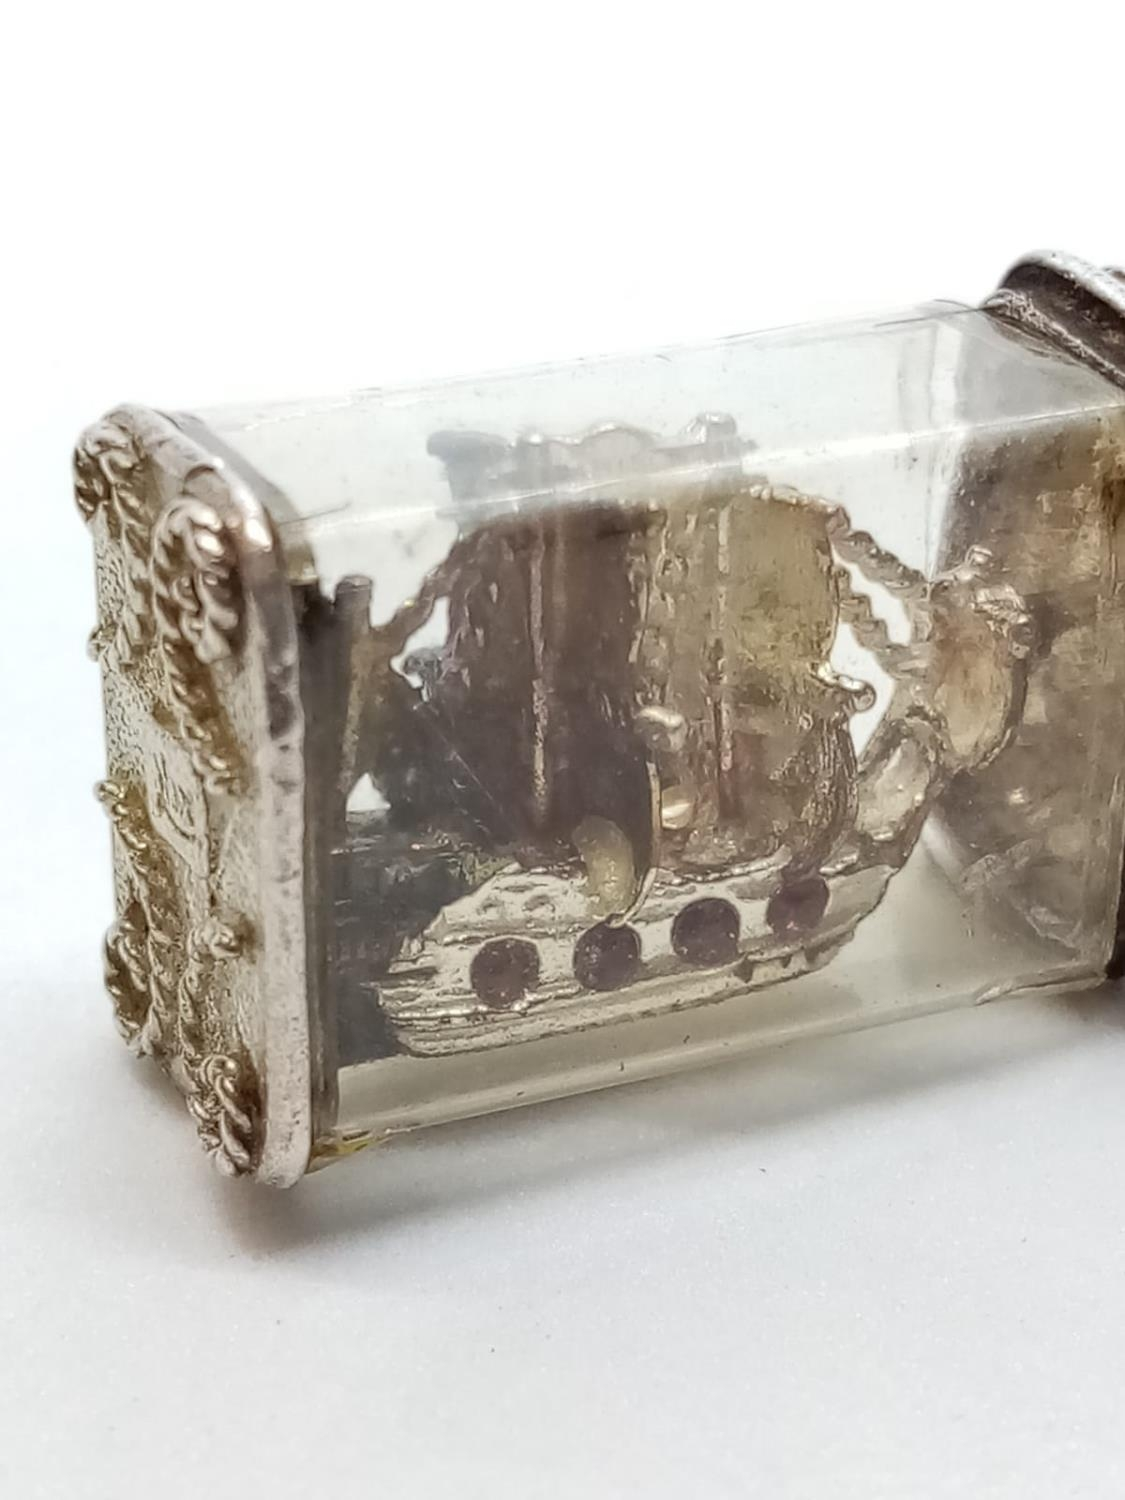 Silver Ship in a Bottle CHARM - Image 2 of 4